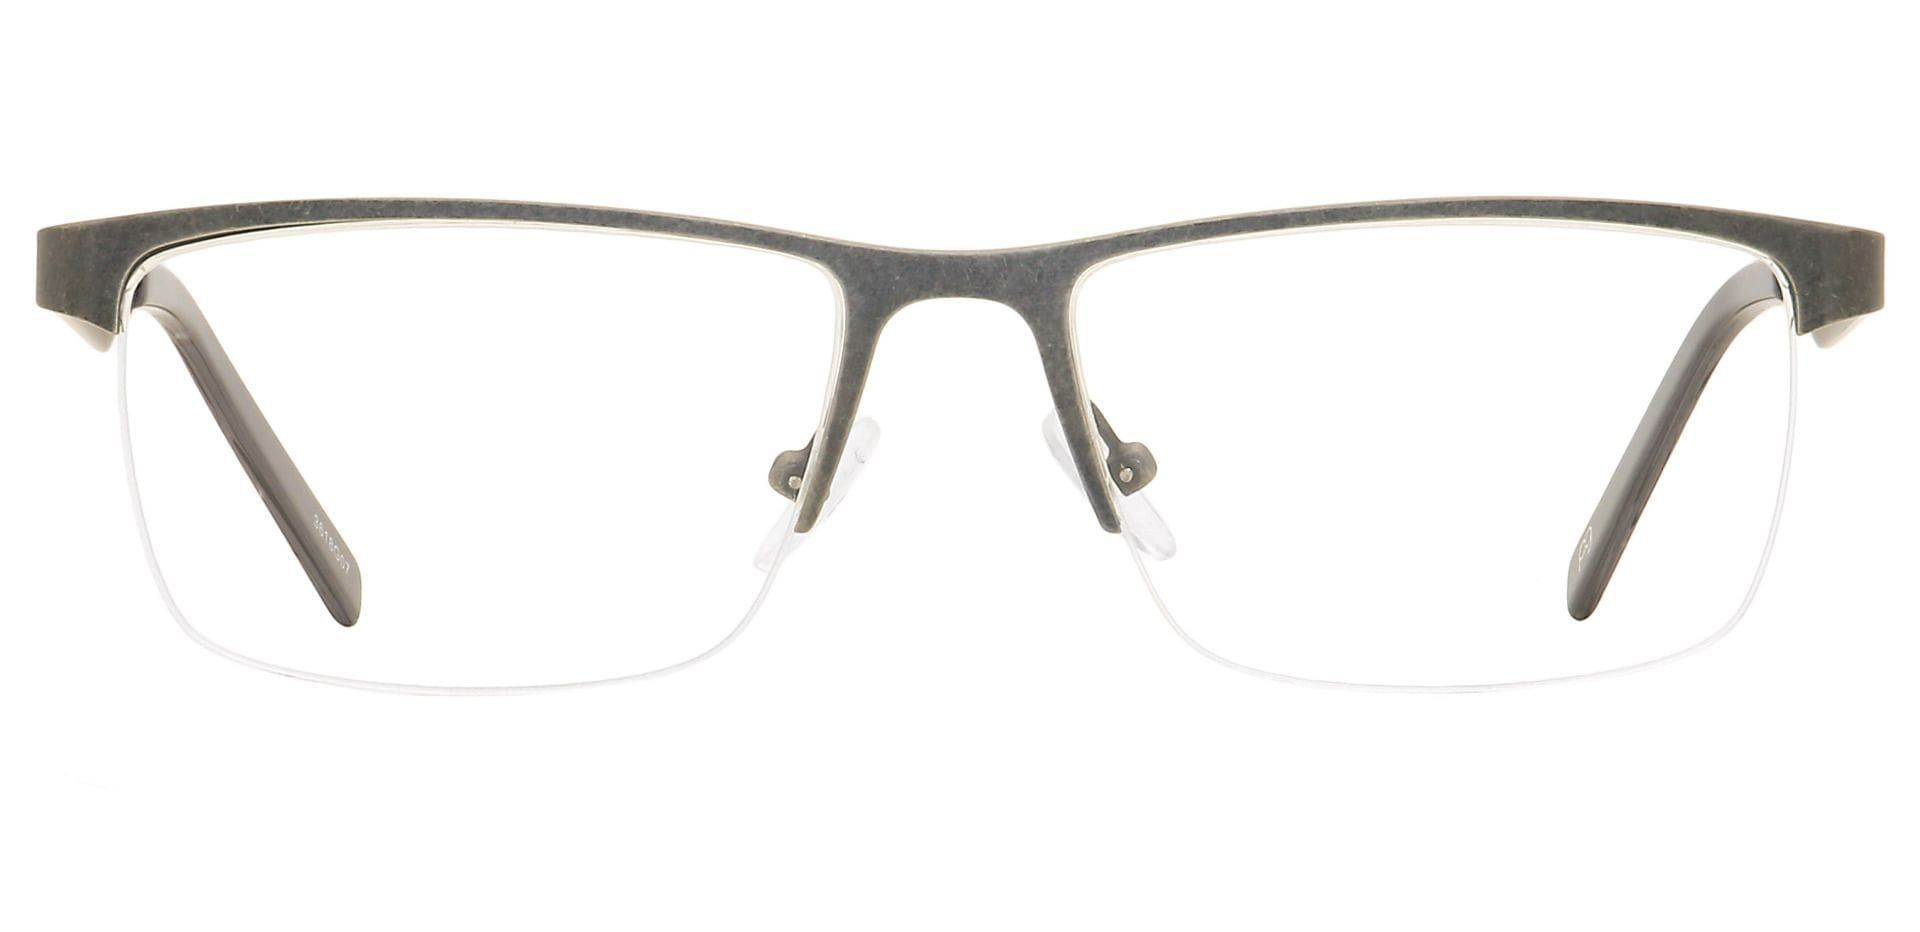 Edgar Rectangleray Prescription Glasses - Gray